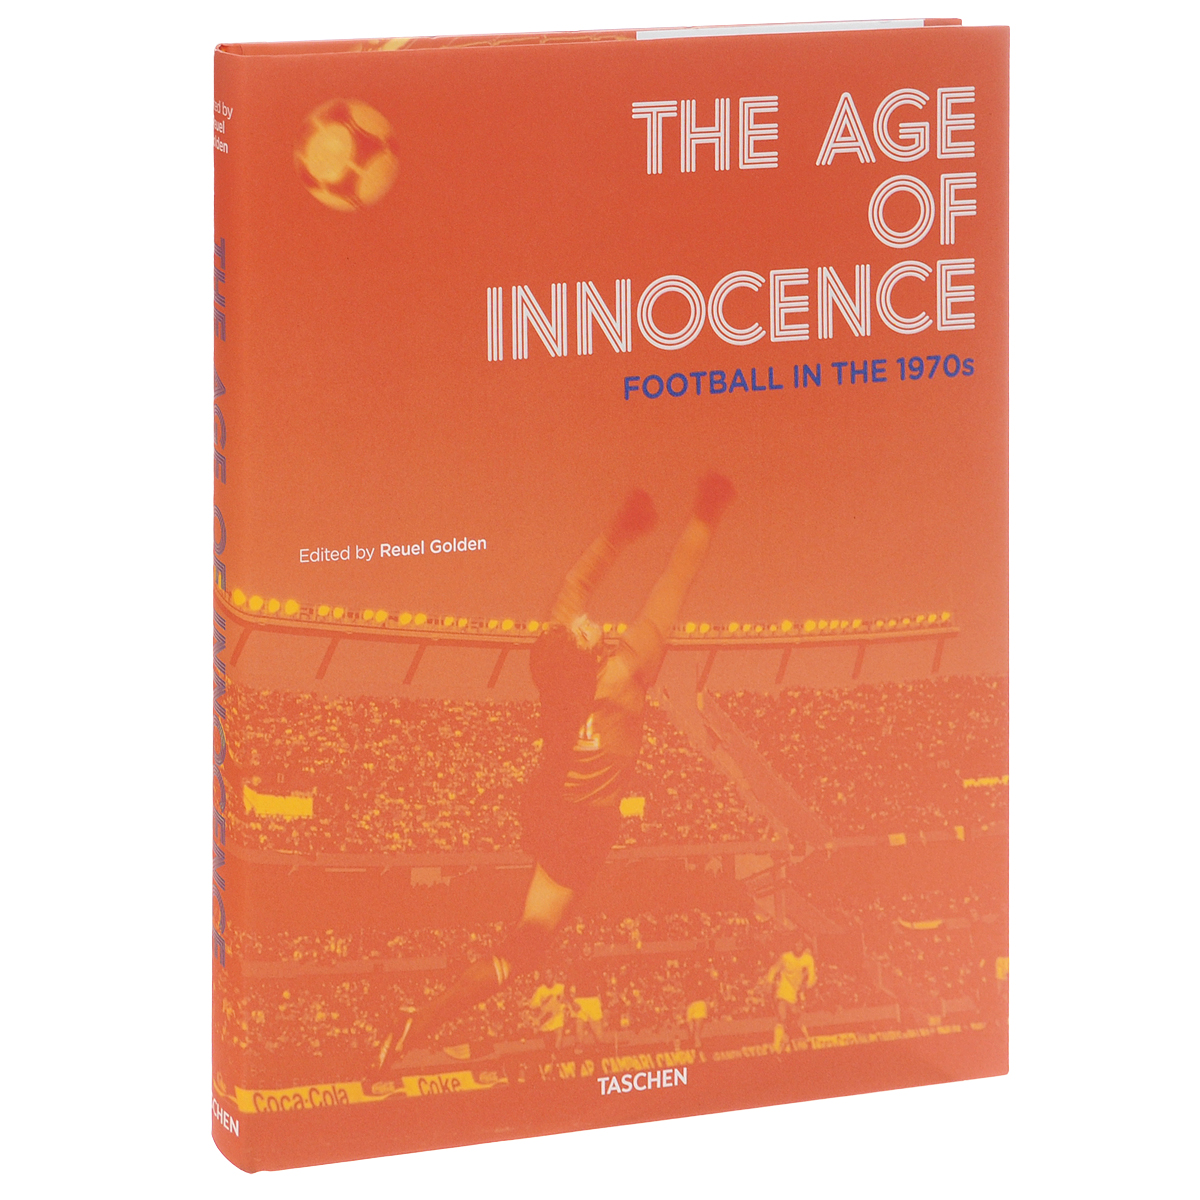 The Age of Innocence: Football in the1970s